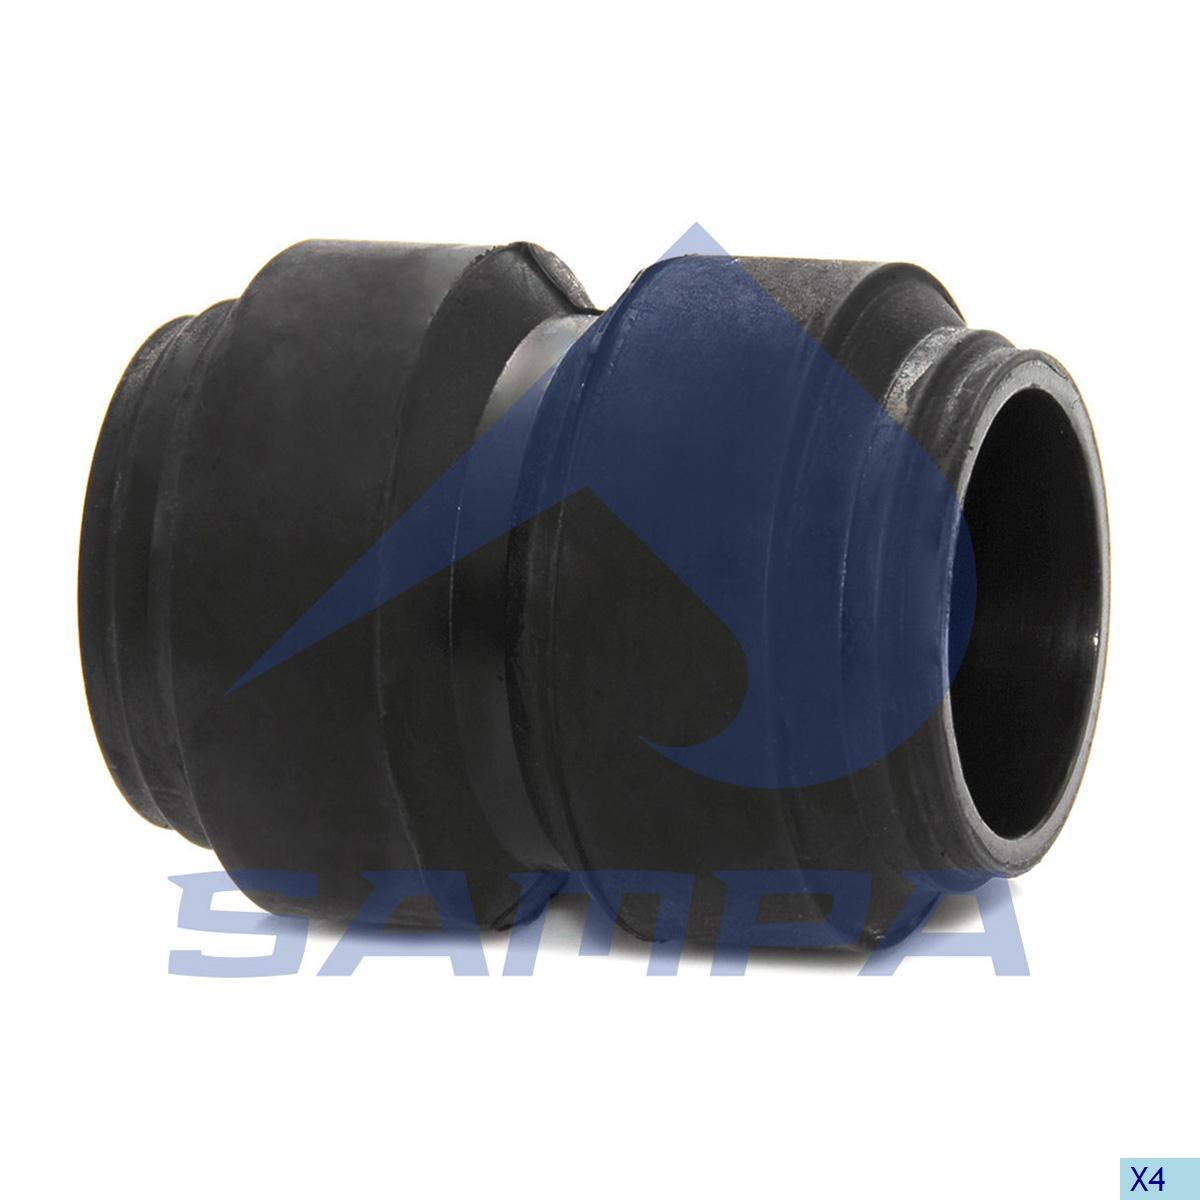 Rubber Bushing, Spring, Ror-Meritor, Suspension